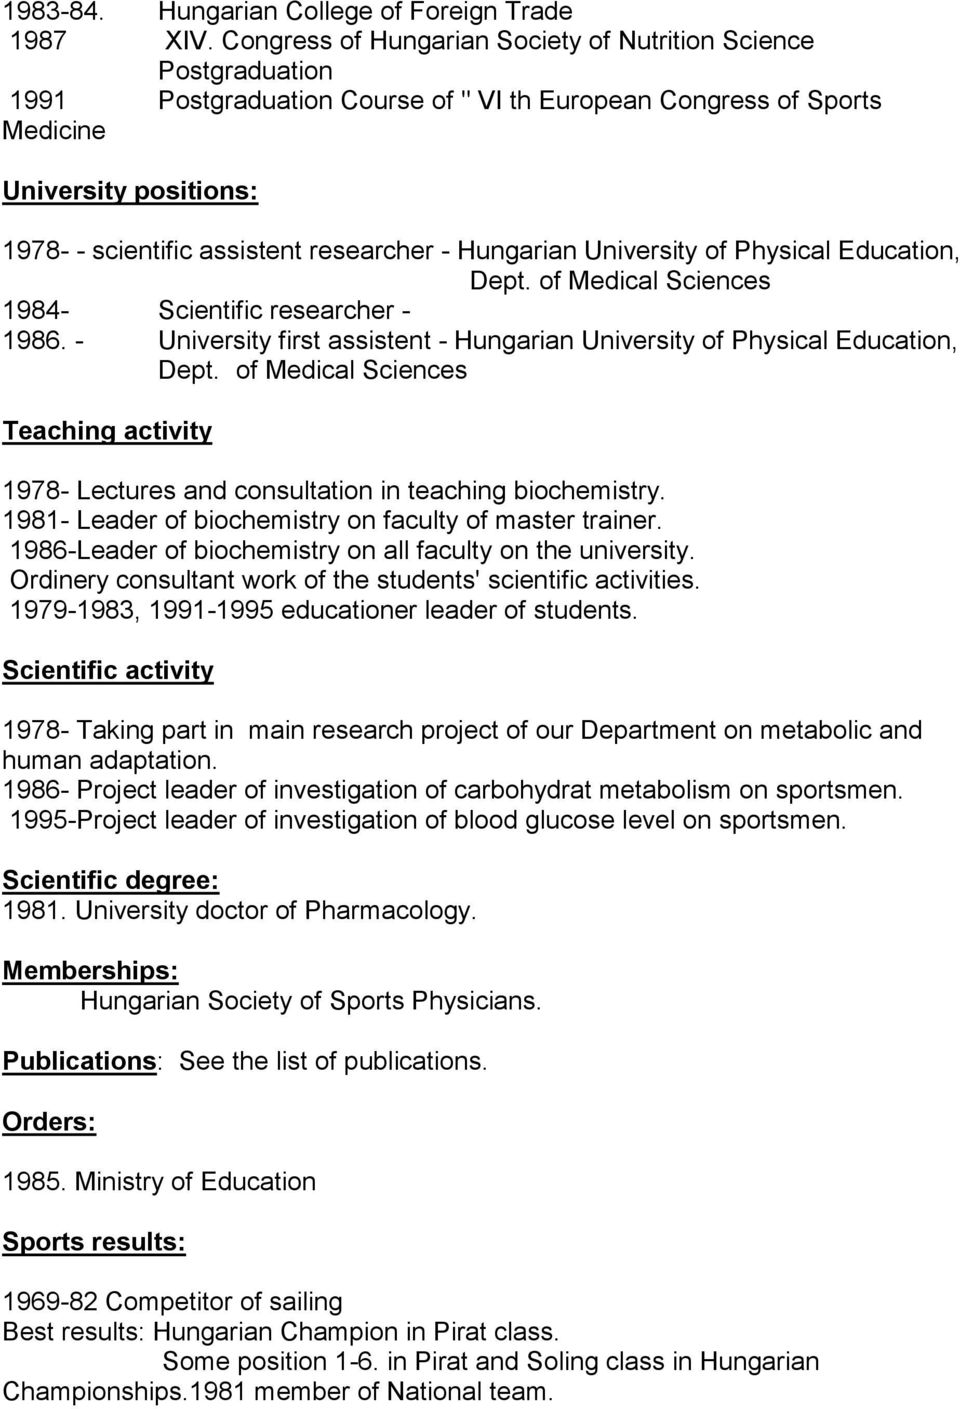 researcher - Hungarian University of Physical Education, Dept. of Medical Sciences 1984- Scientific researcher - 1986. - University first assistent - Hungarian University of Physical Education, Dept.